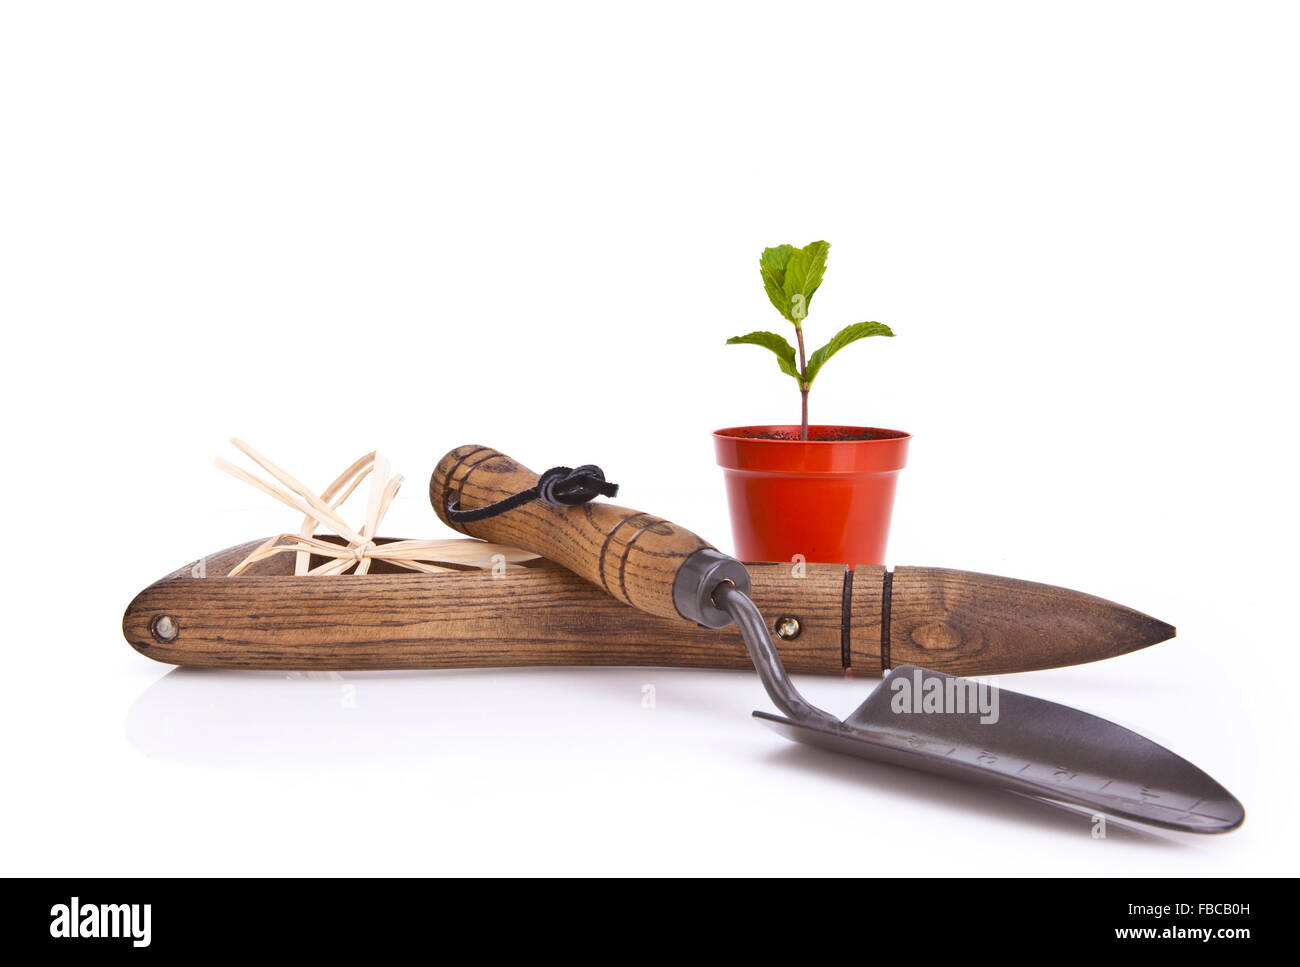 Gardening tools and plant pot over white background Stock Photo